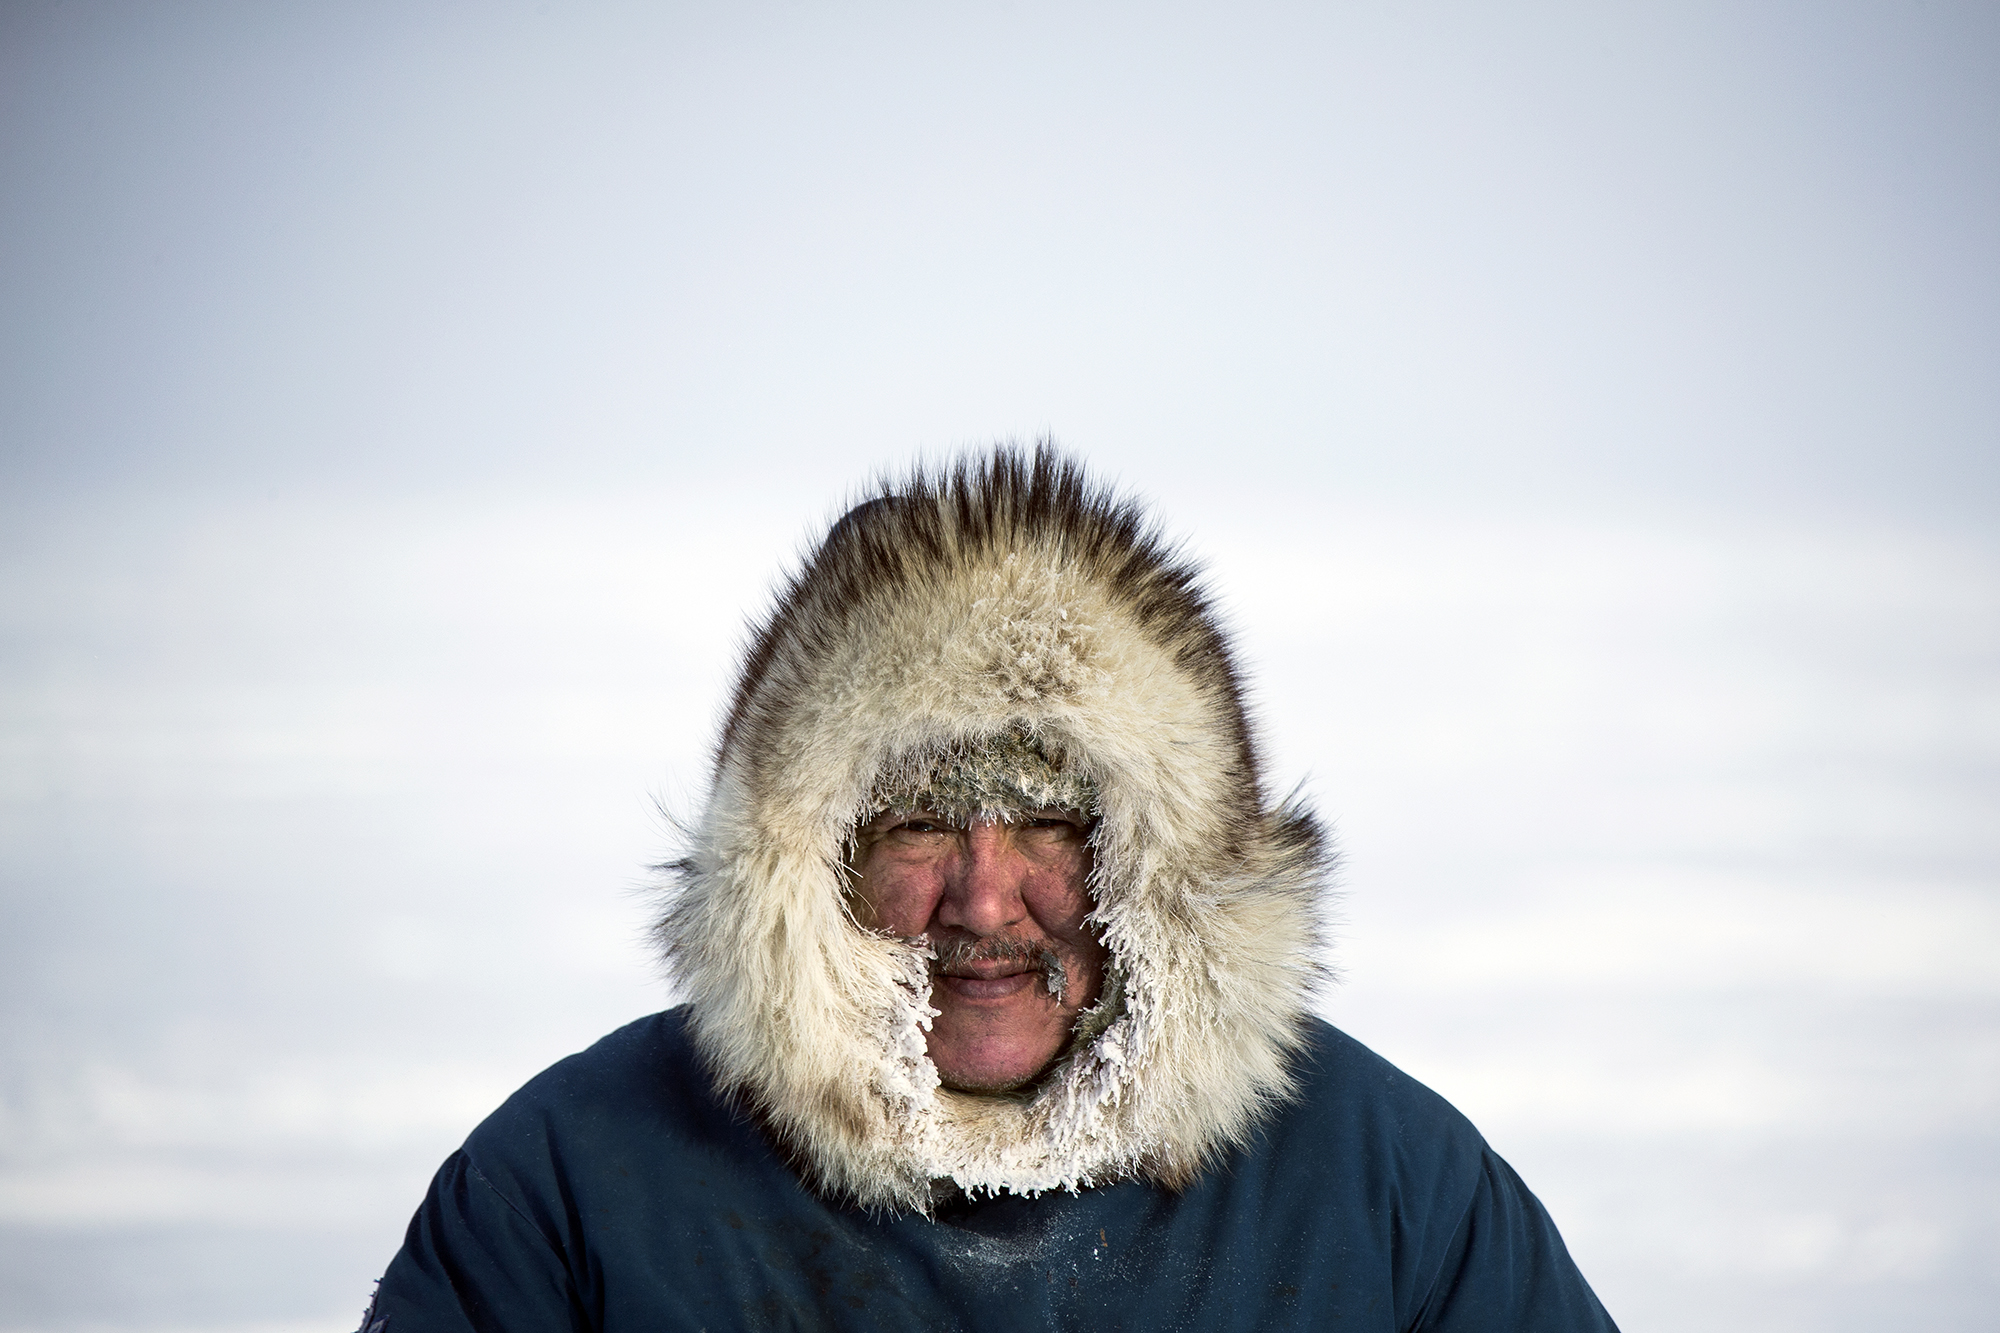 A Canadian Inuit man on the sea ice in the winter. Hall Beach, Nunavut, Canada.